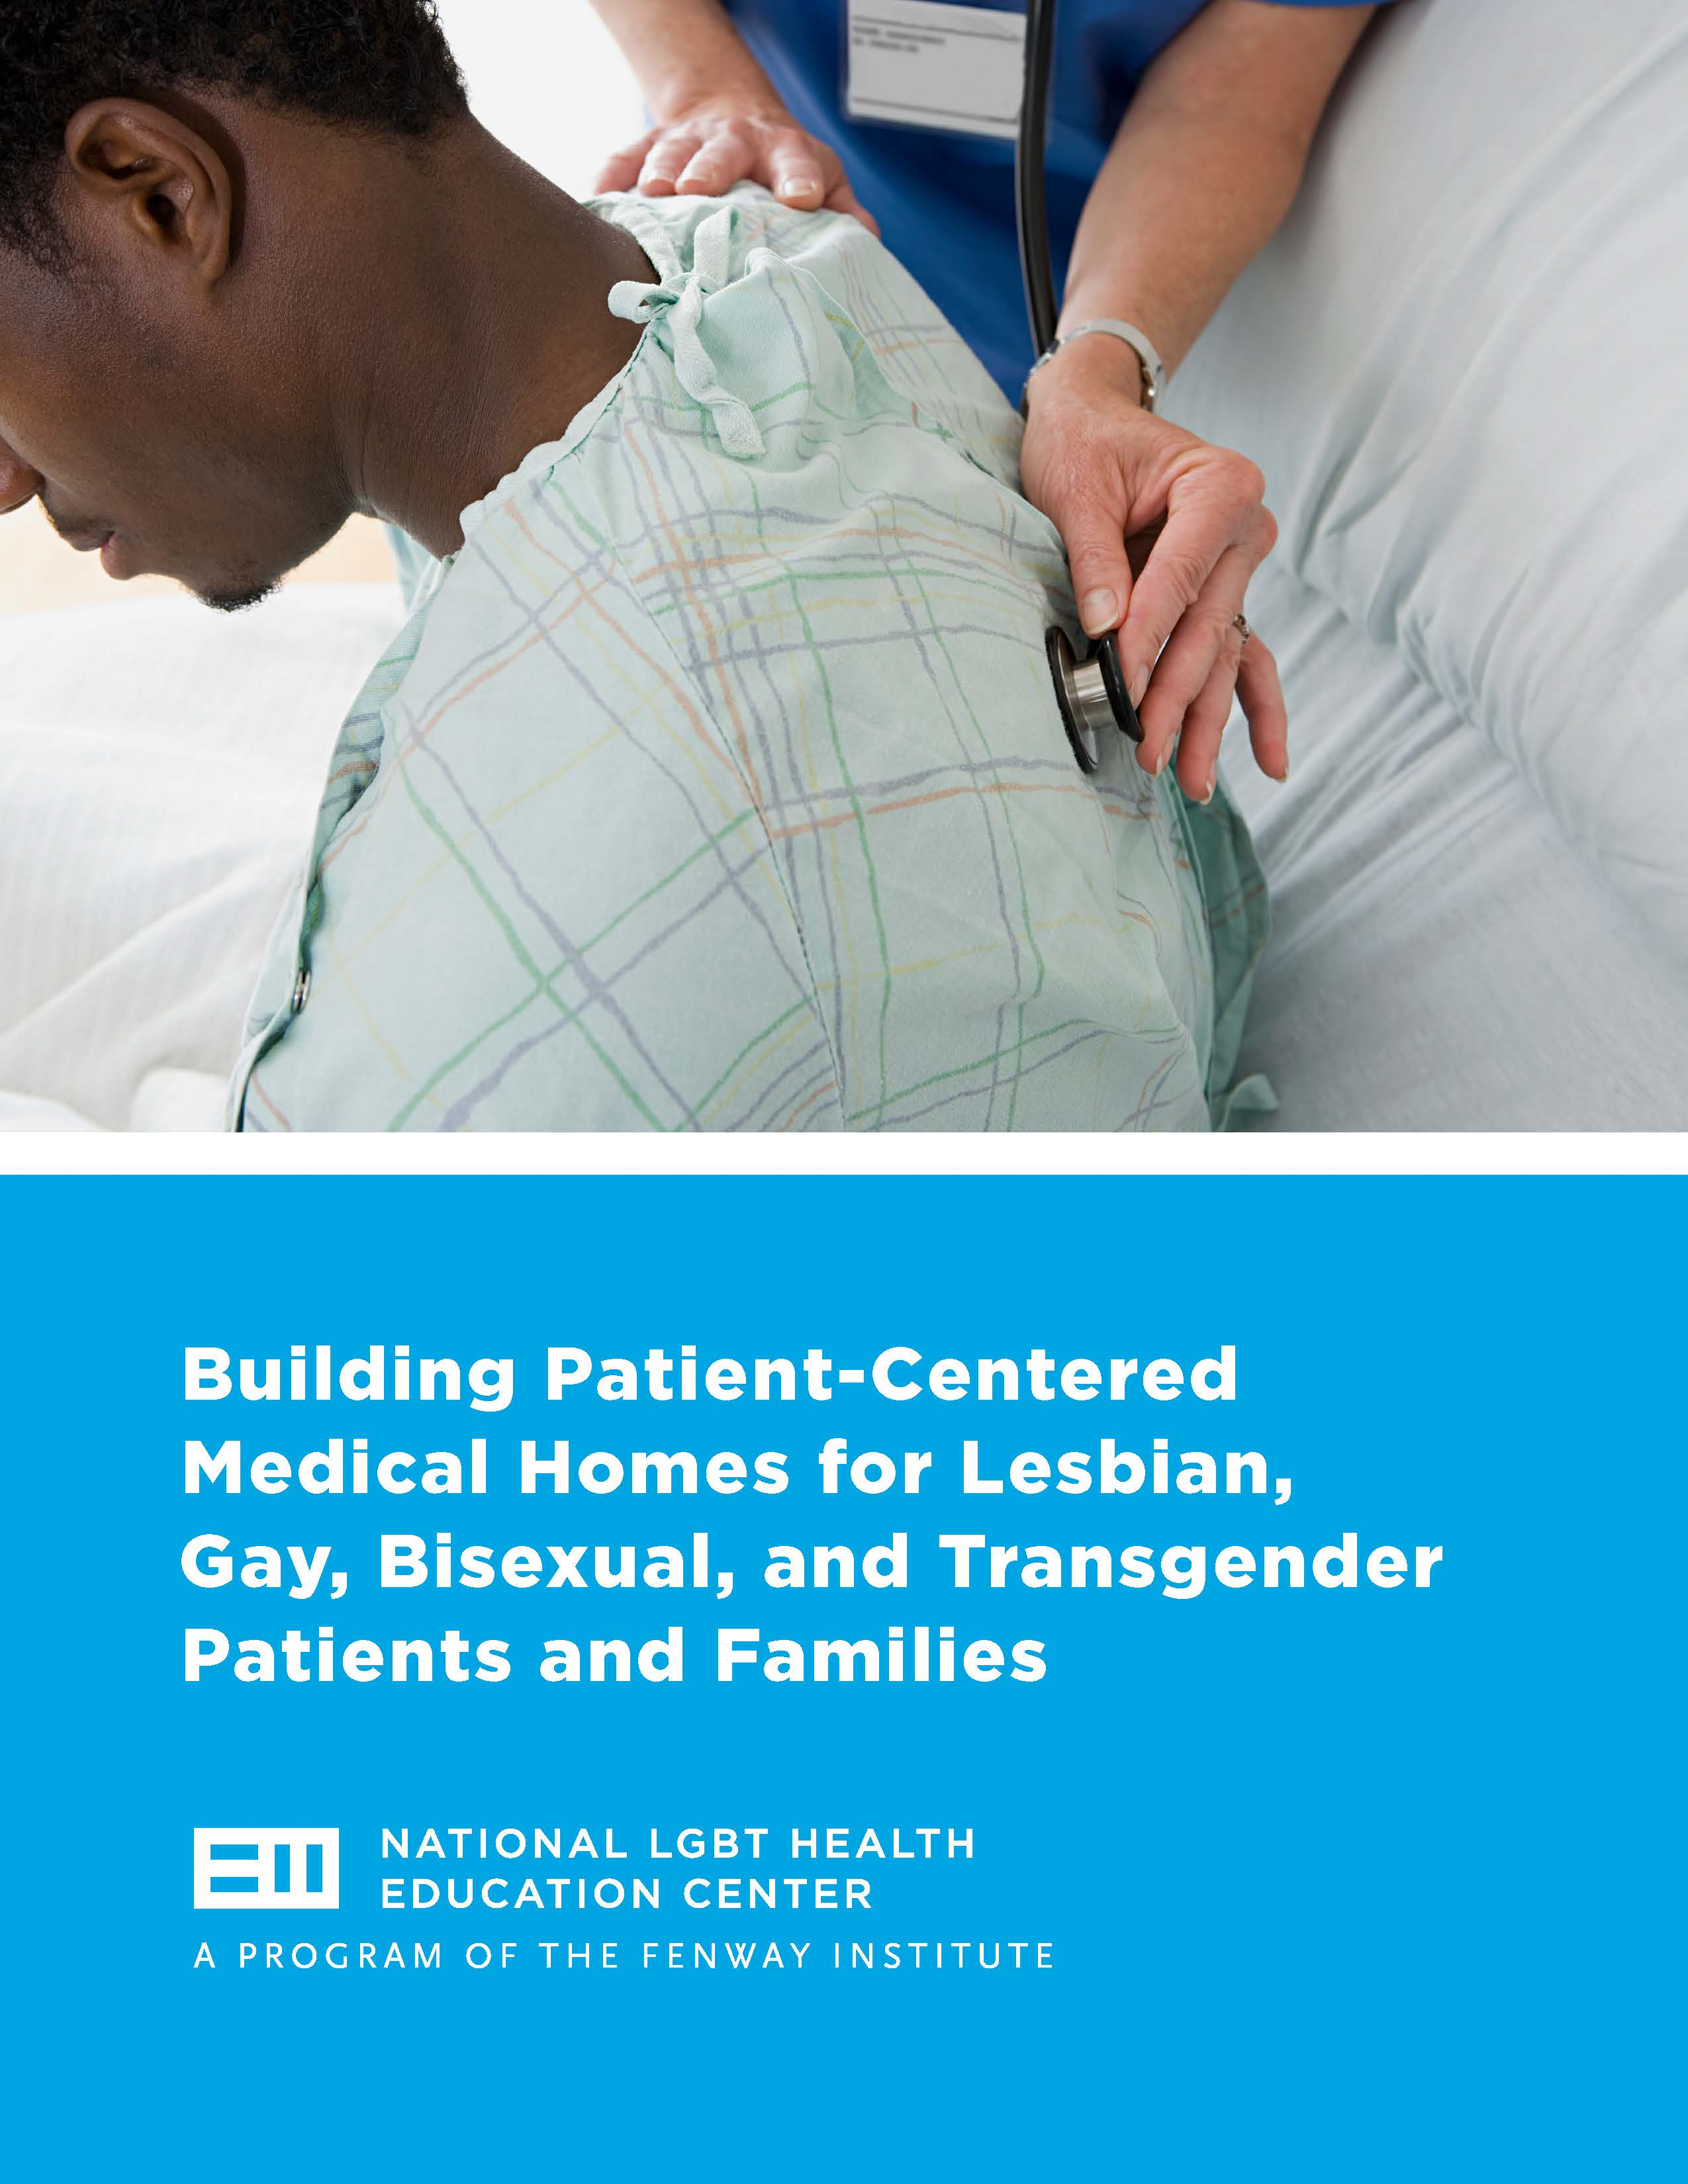 Building Patient-Centered Medical Homes for Lesbian, Gay, Bisexual, and Transgender Patients and Families